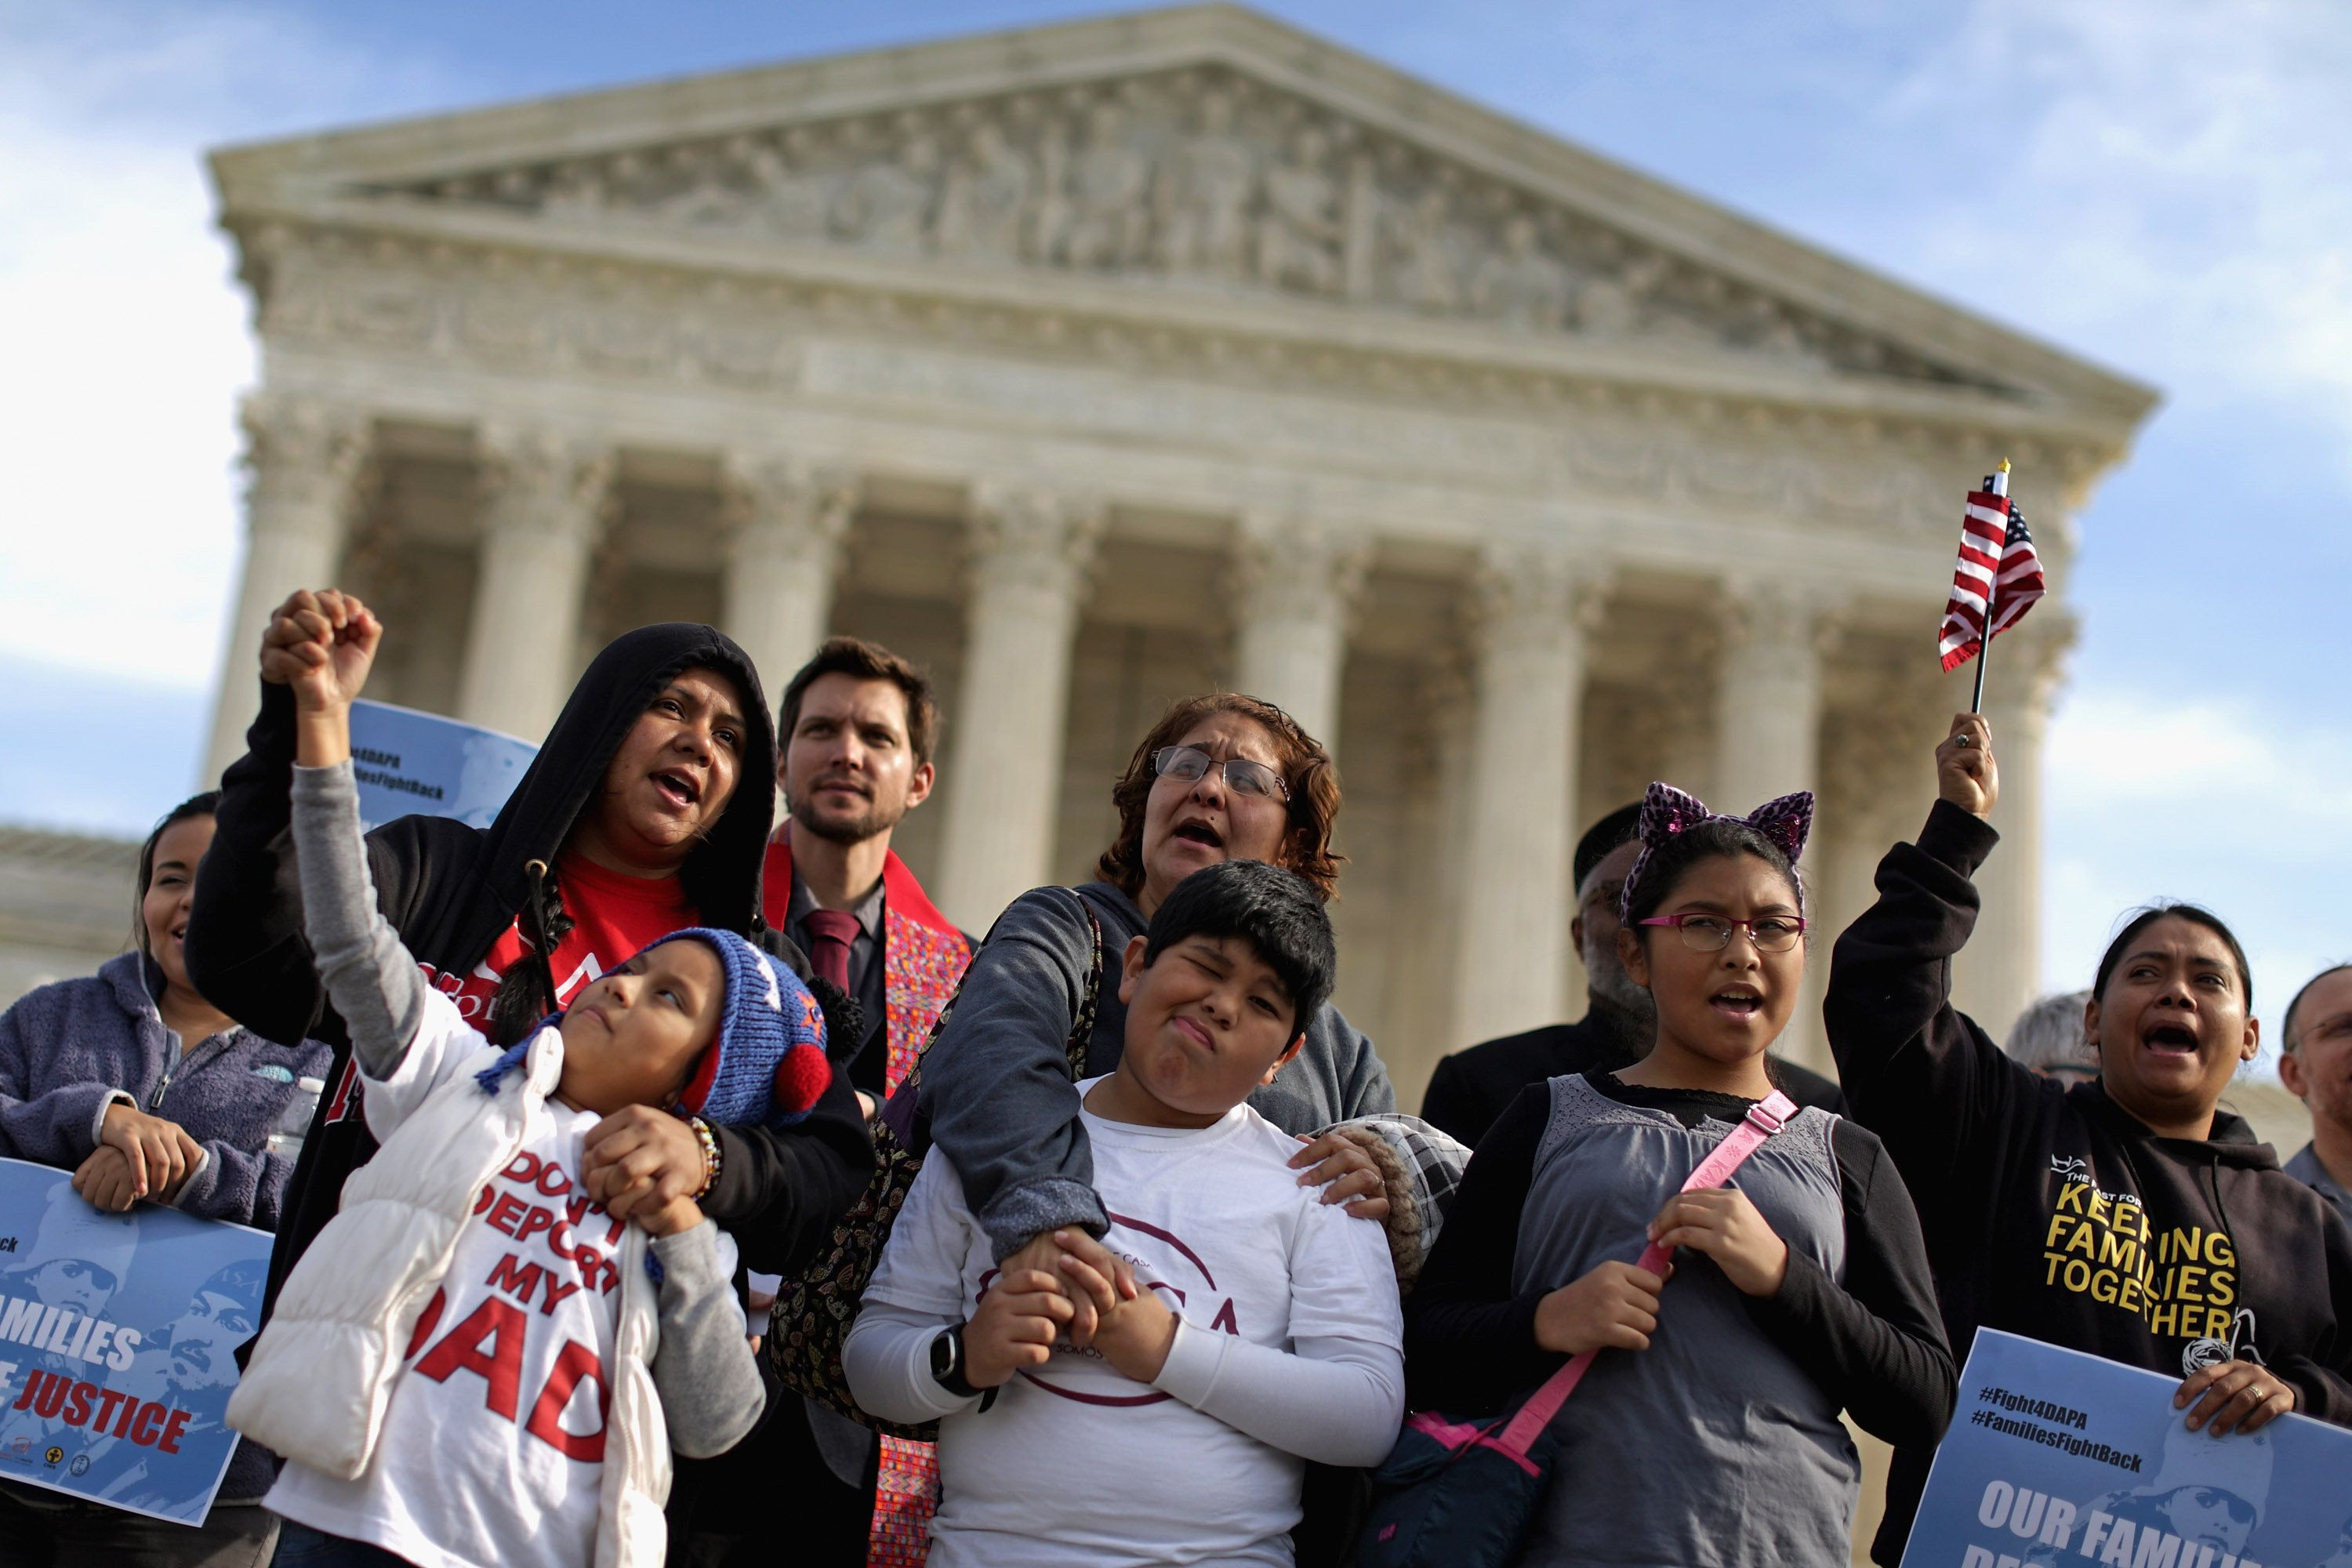 WASHINGTON, DC - DECEMBER 11:  Families chant 'Si se puede!' during a prayer vigil and rally in front of the Supreme Court December 11, 2015 in Washington, DC. Organized by The Fair Immigration Reform Movement (FIRM) and CASA, about 40 people gathered to pray for the Supreme Court justices after they agreed to hear a case regarding President Barack Obama's executive order to expand Deferred Action for Childhood Arrivals and implement Deferred Action for Parental Accountability.  (Photo by Chip Somodevilla/Getty Images)